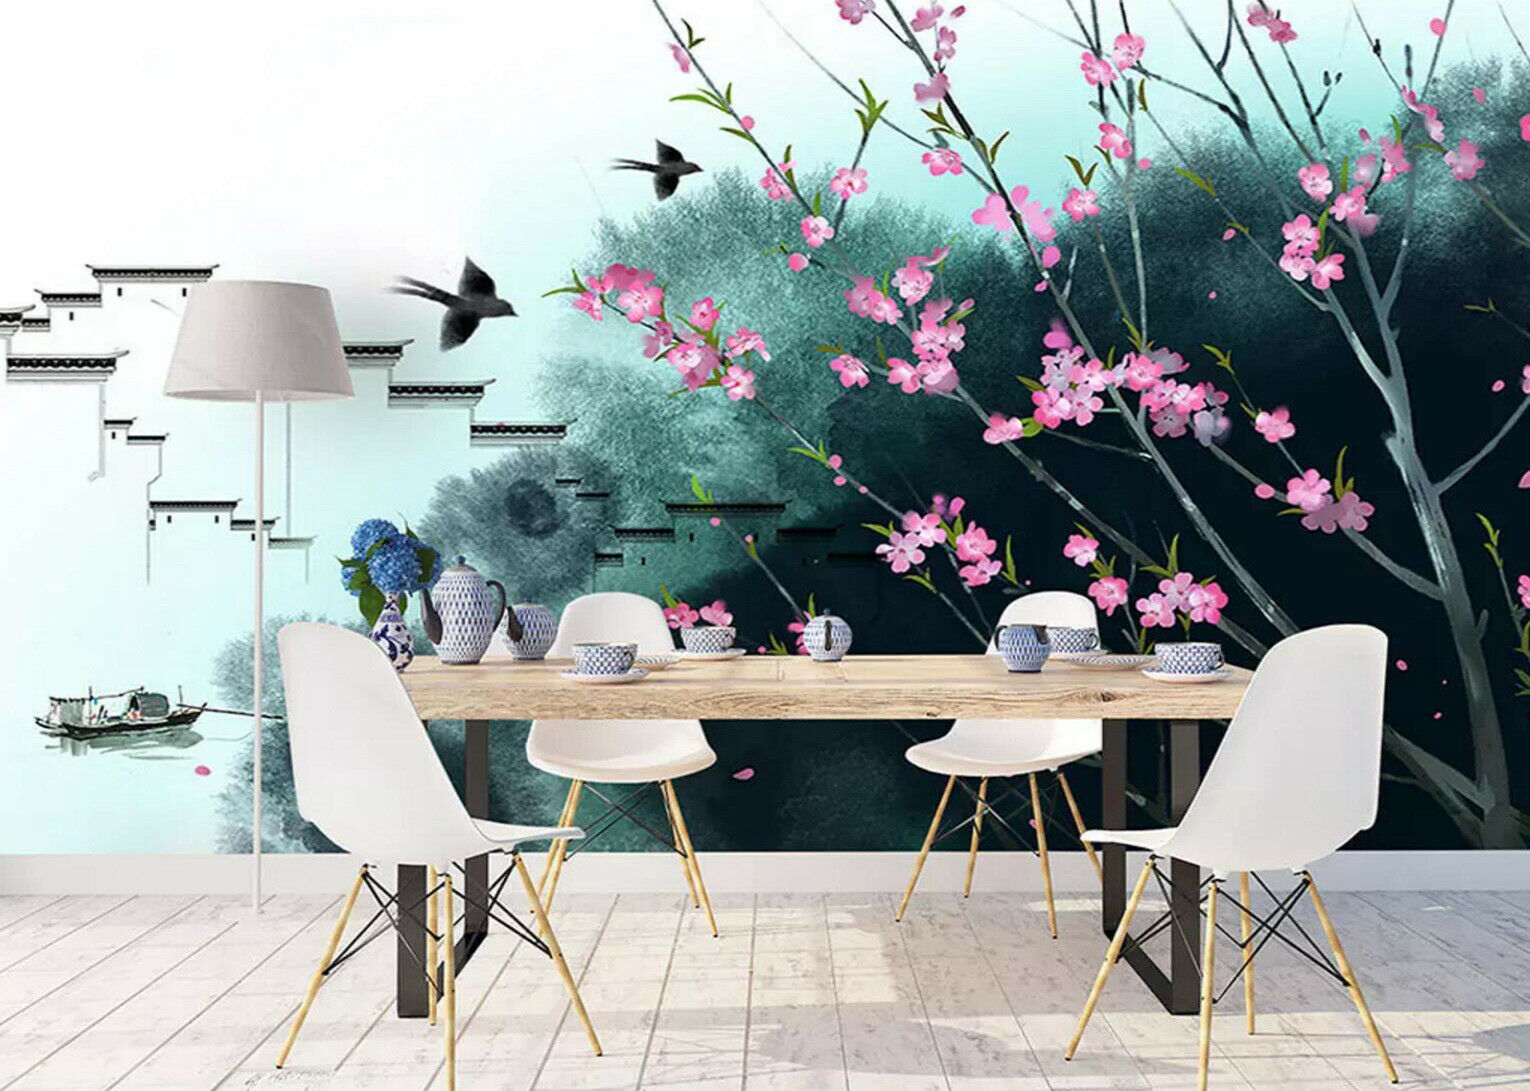 3D Ink Town Scenery 5 Wall Paper Exclusive MXY Wallpaper Mural Decal Indoor wall